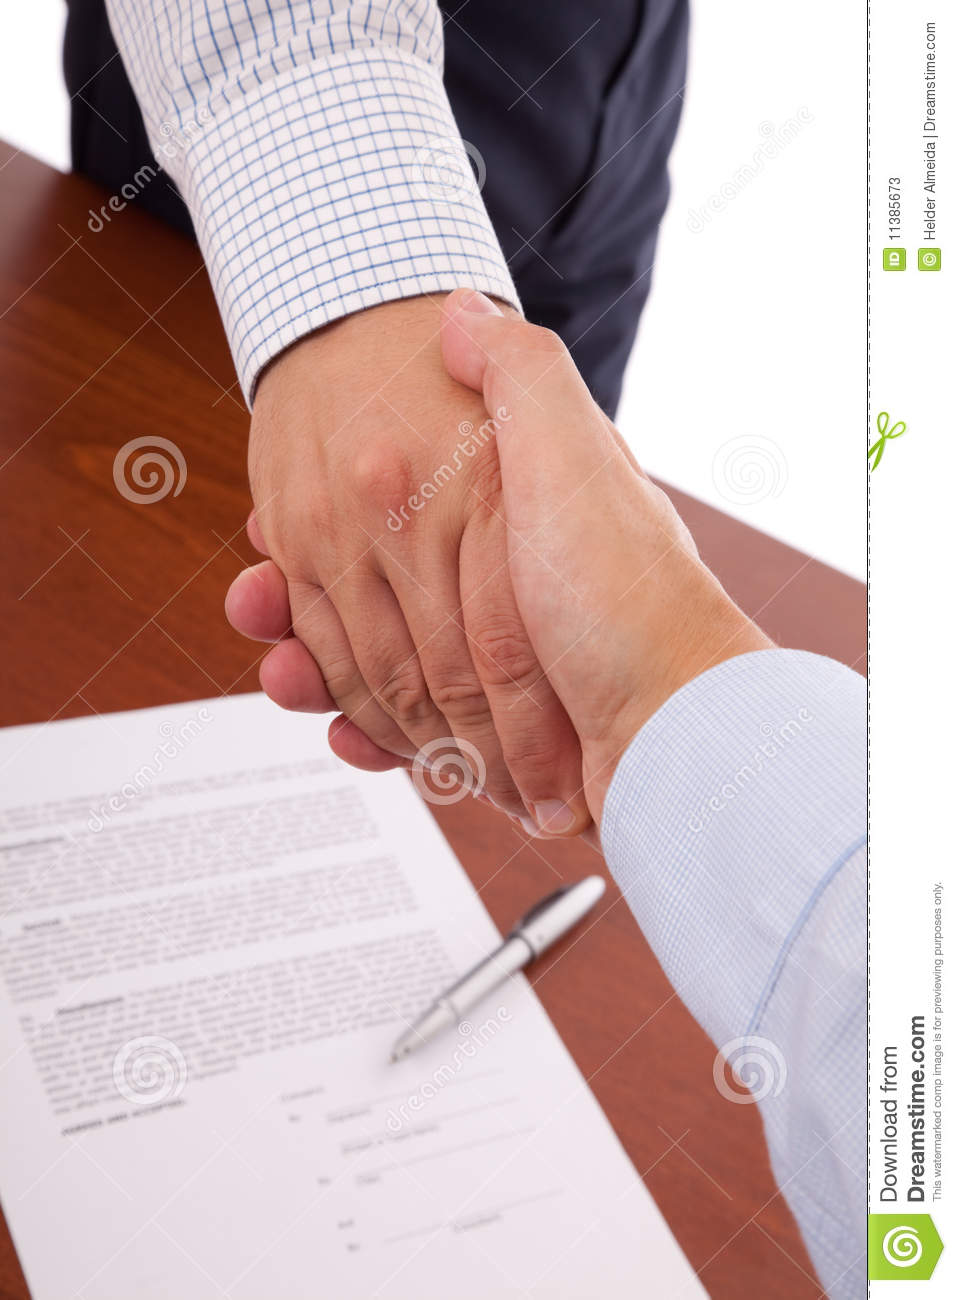 Closing the contract